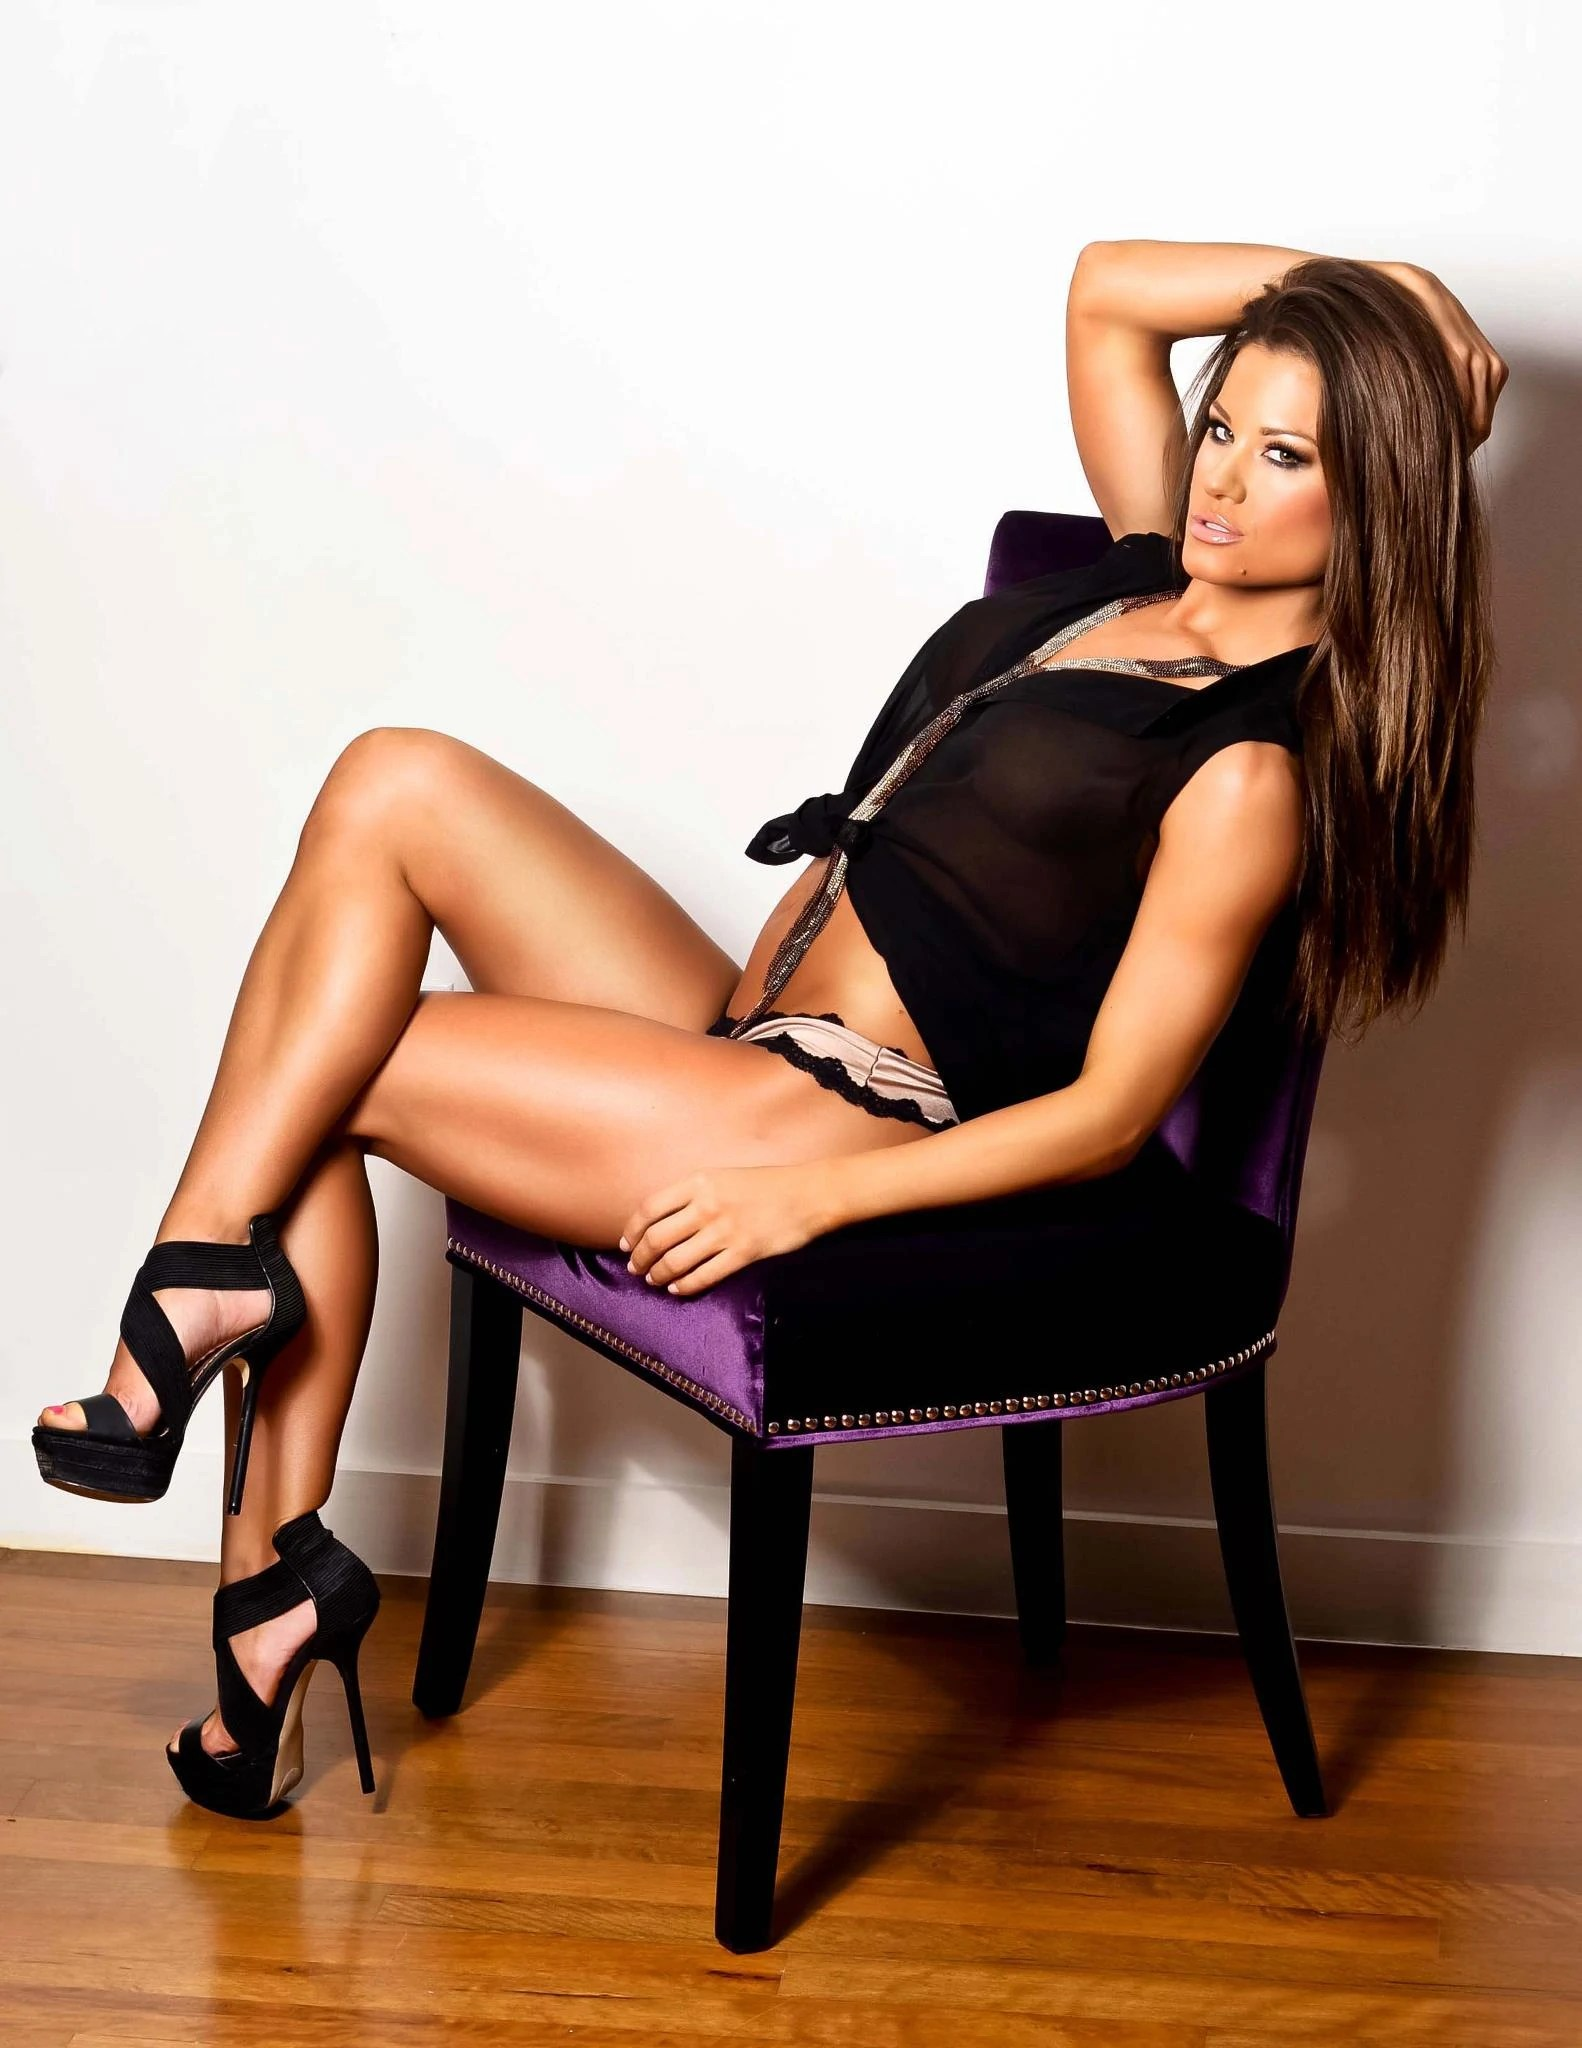 Bust Size Holly Sonders